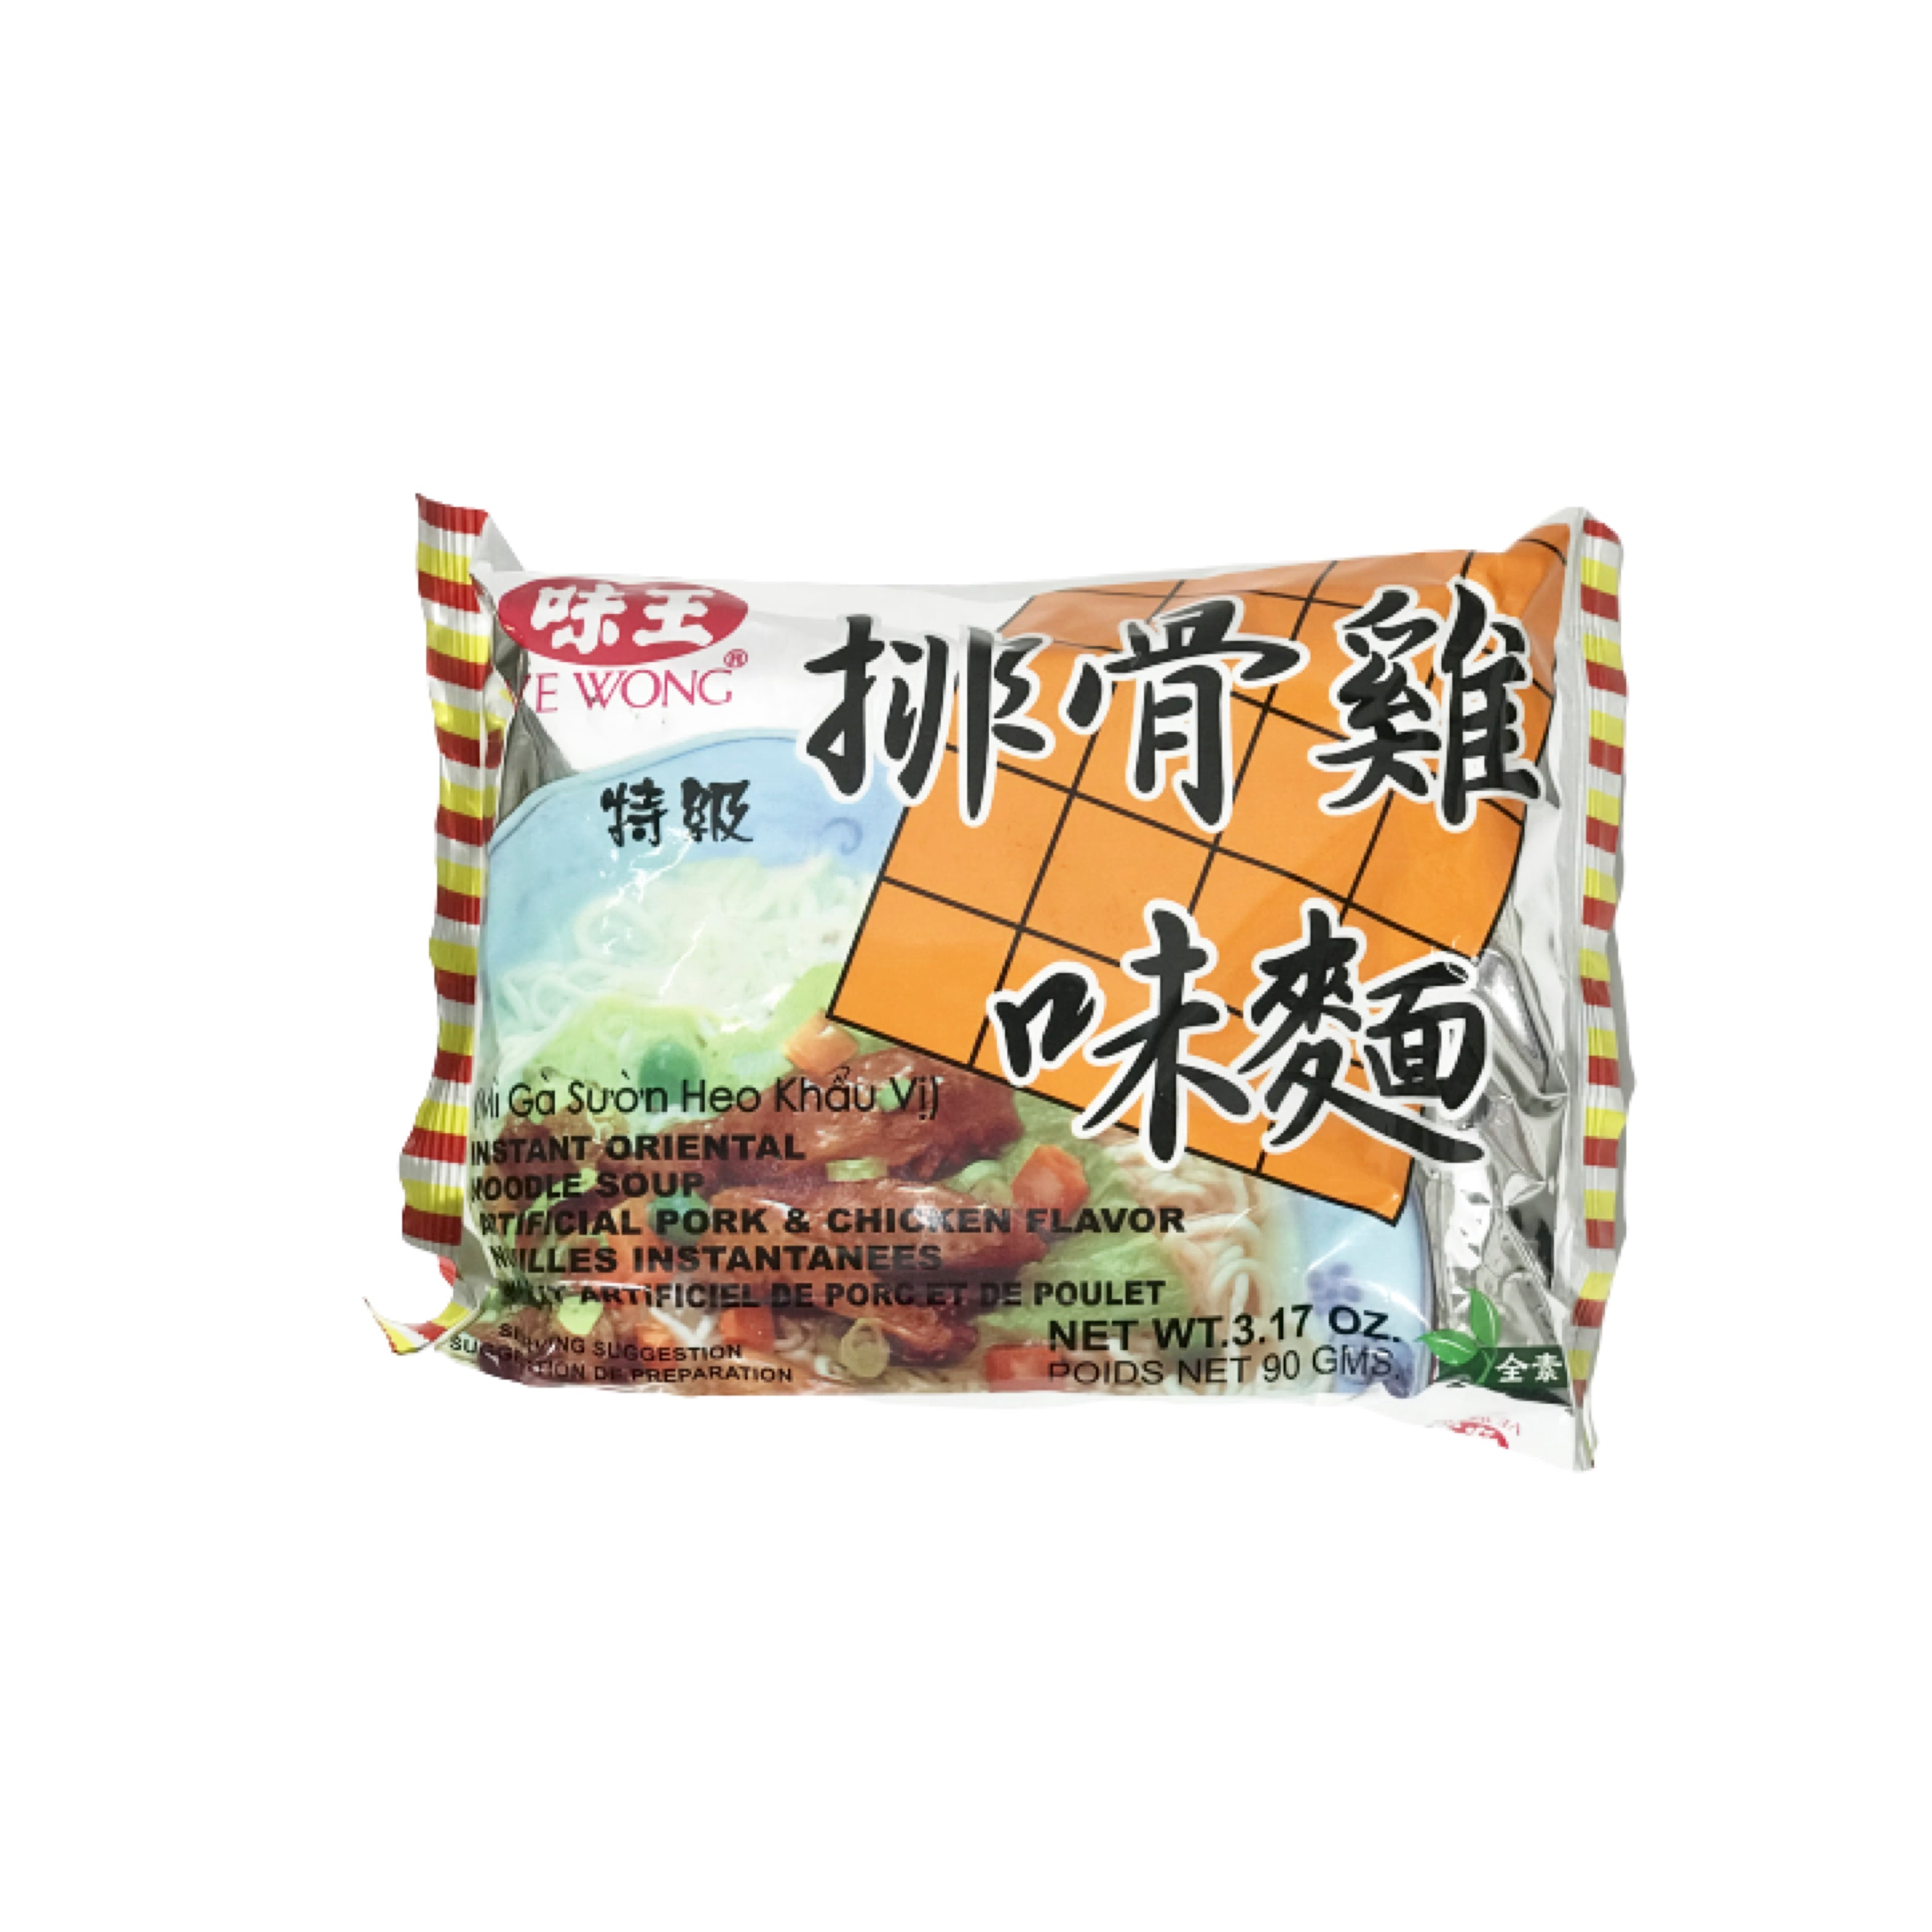 WeiWong Pork & Chicken Flavor